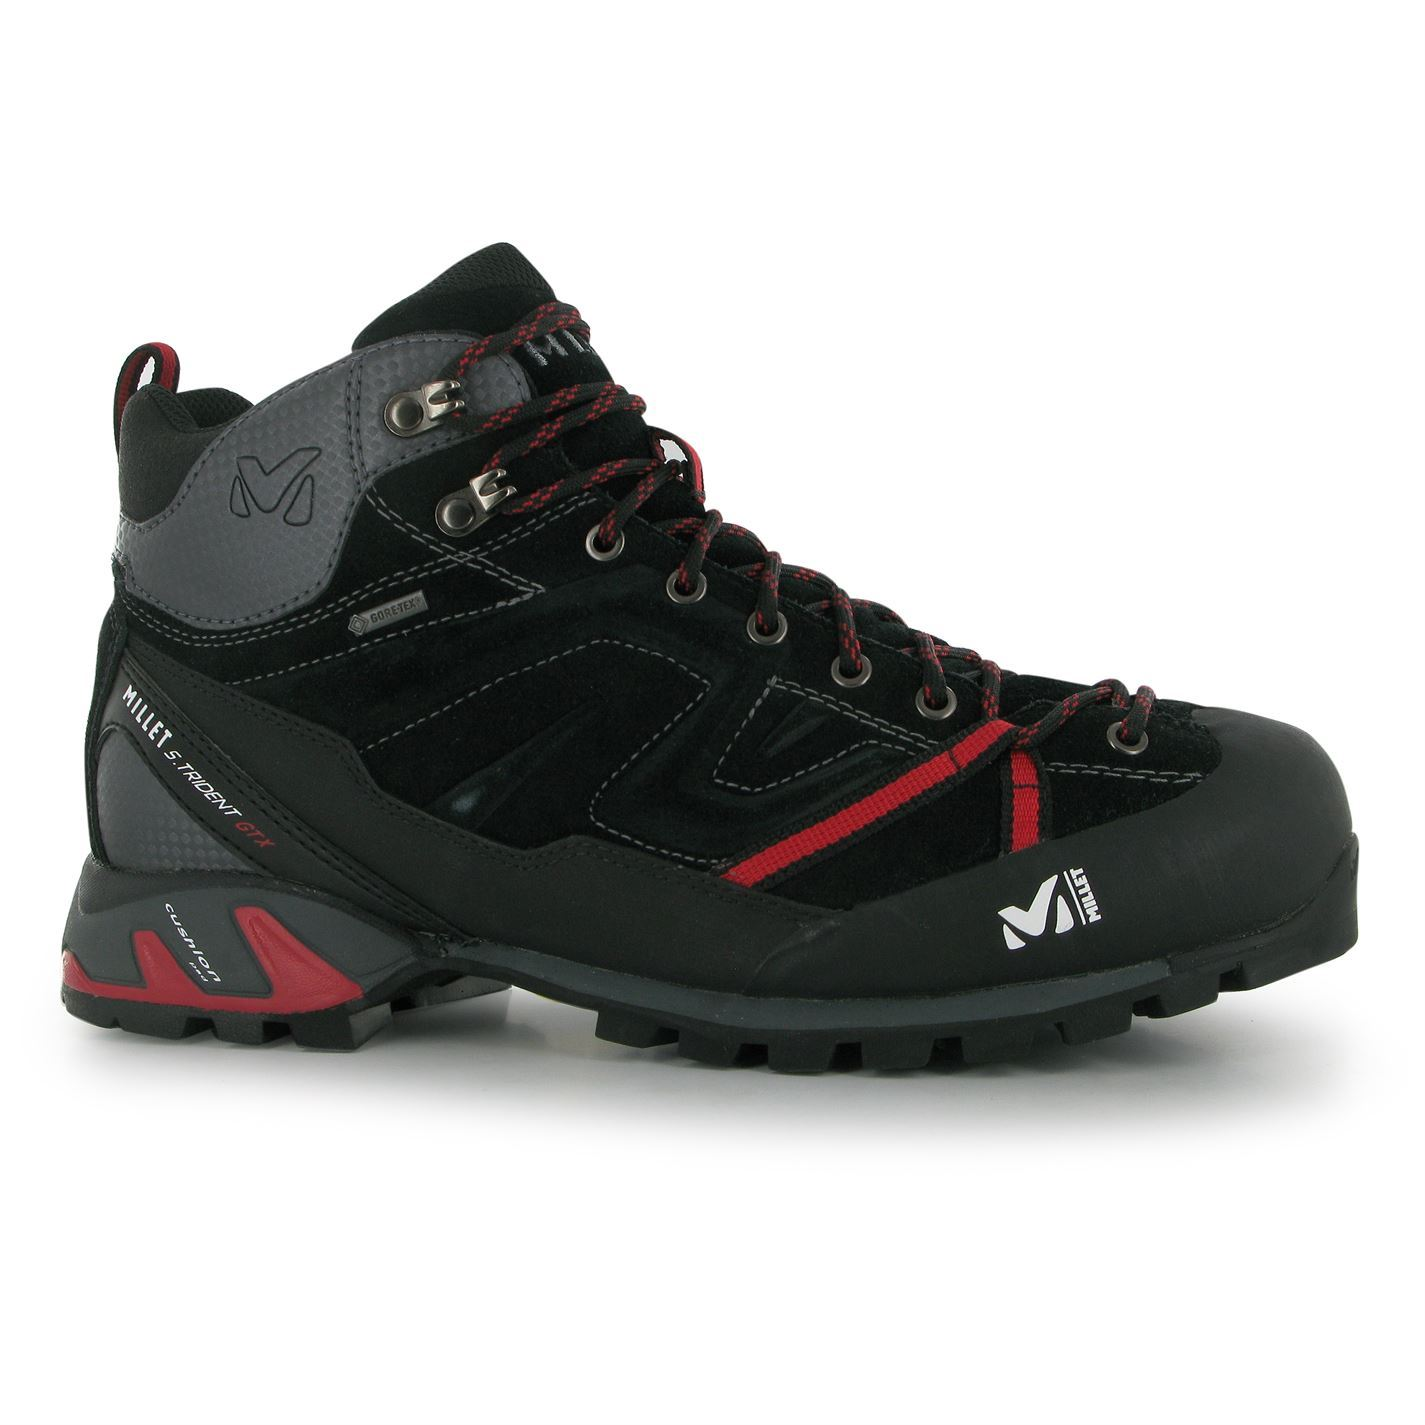 Millet Mens Super Trident Gtx Walking Boots Lace Up Hiking